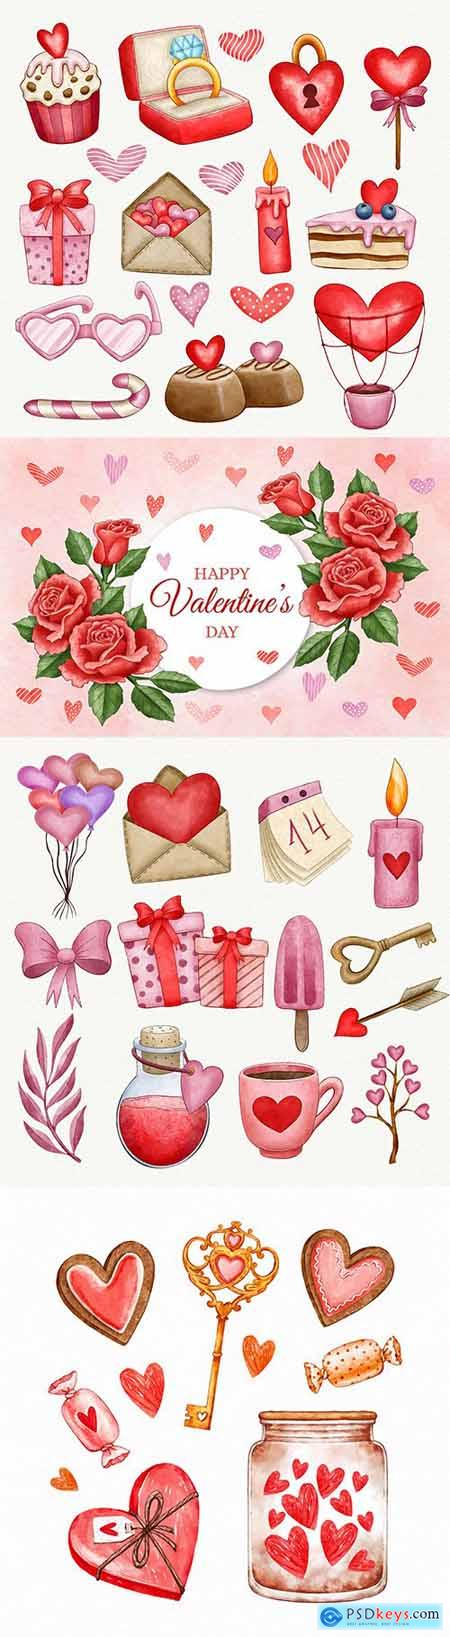 Watercolor Valentines Day background and decorative elements